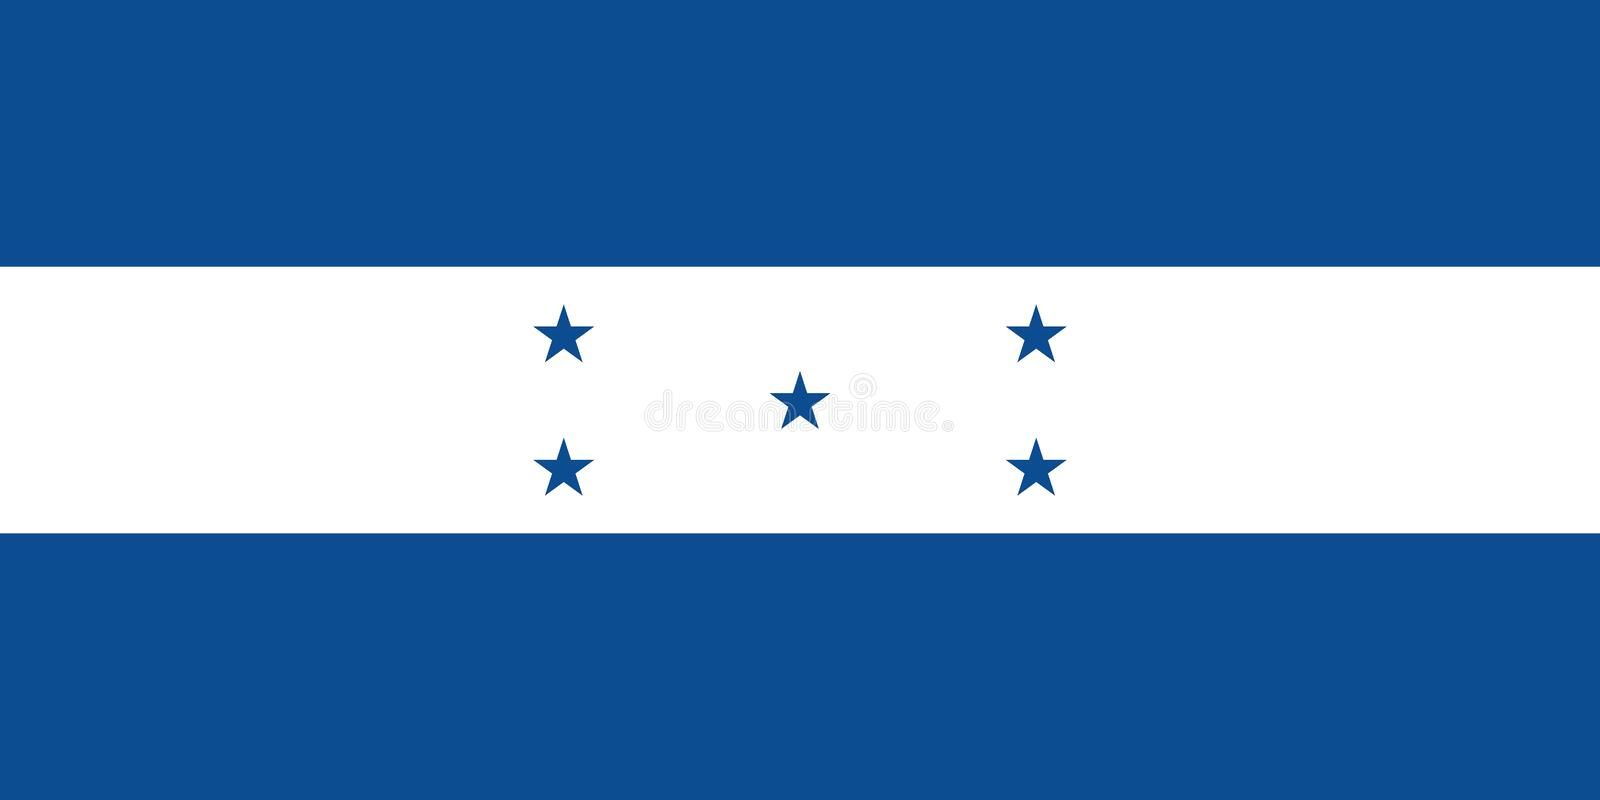 Vector Image of Honduras Flag, The official and exact Honduras flag dimensions and colors. Vector image for Honduras flag. Based on the official and exact stock illustration